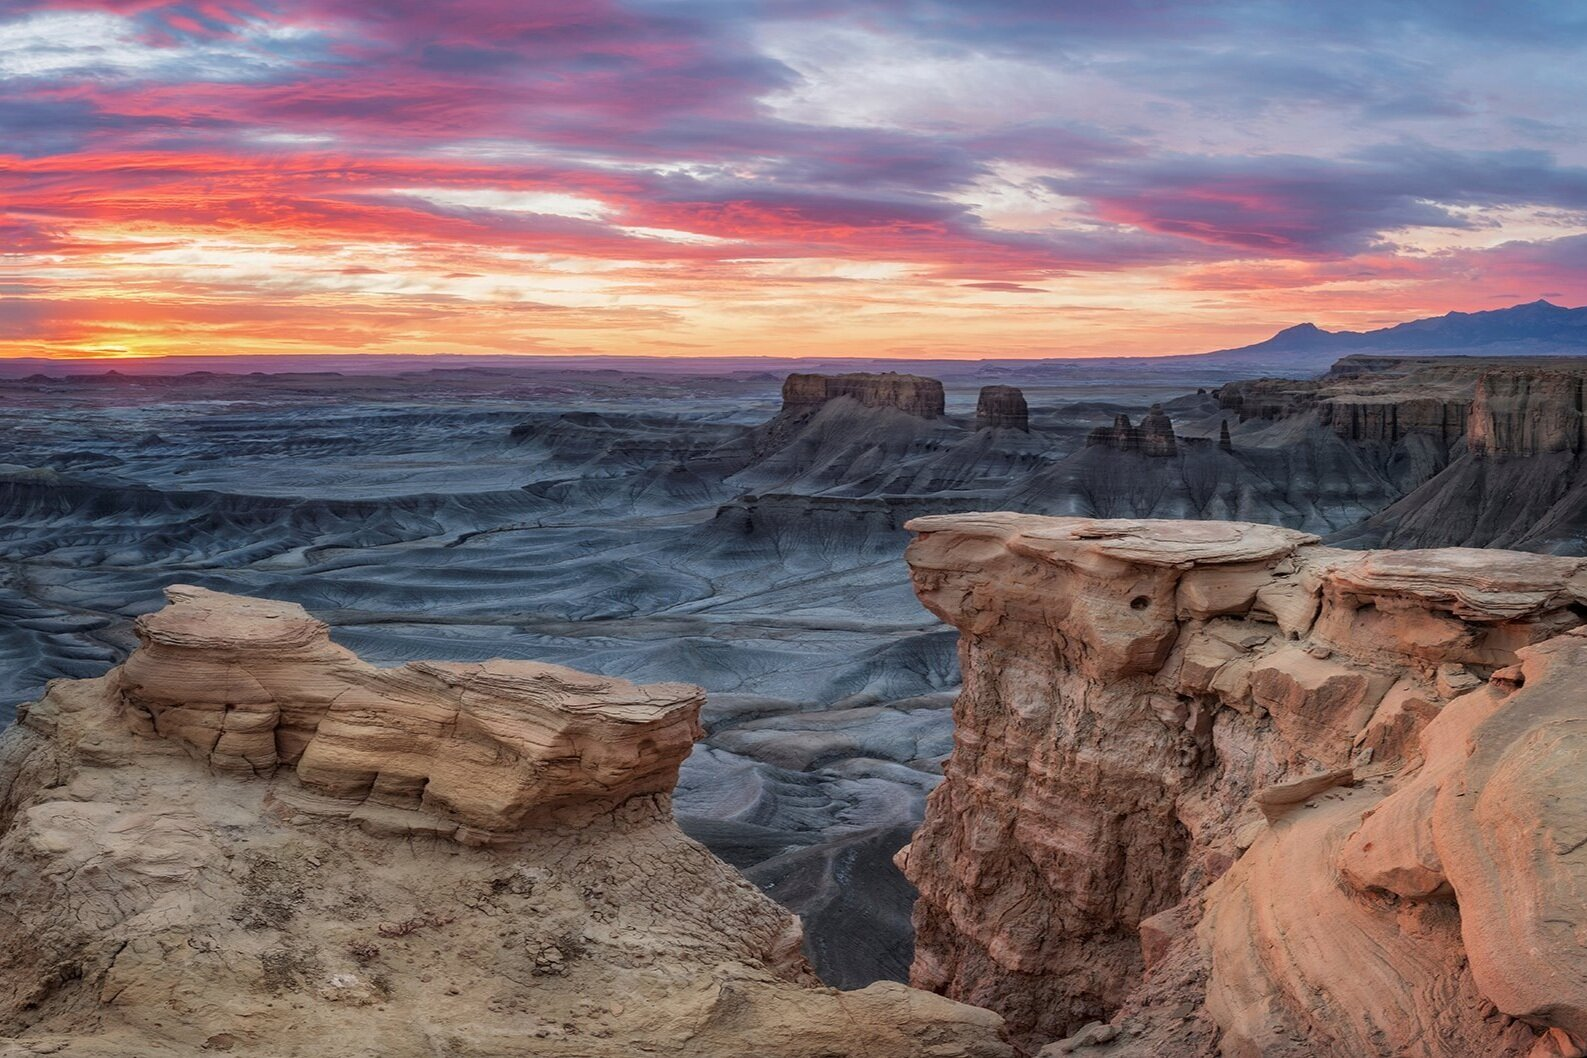 Visit Utah - Explore the official travel and visitor information website for the state of Utah. Find hotels, restaurants, events and things to do in Utah.